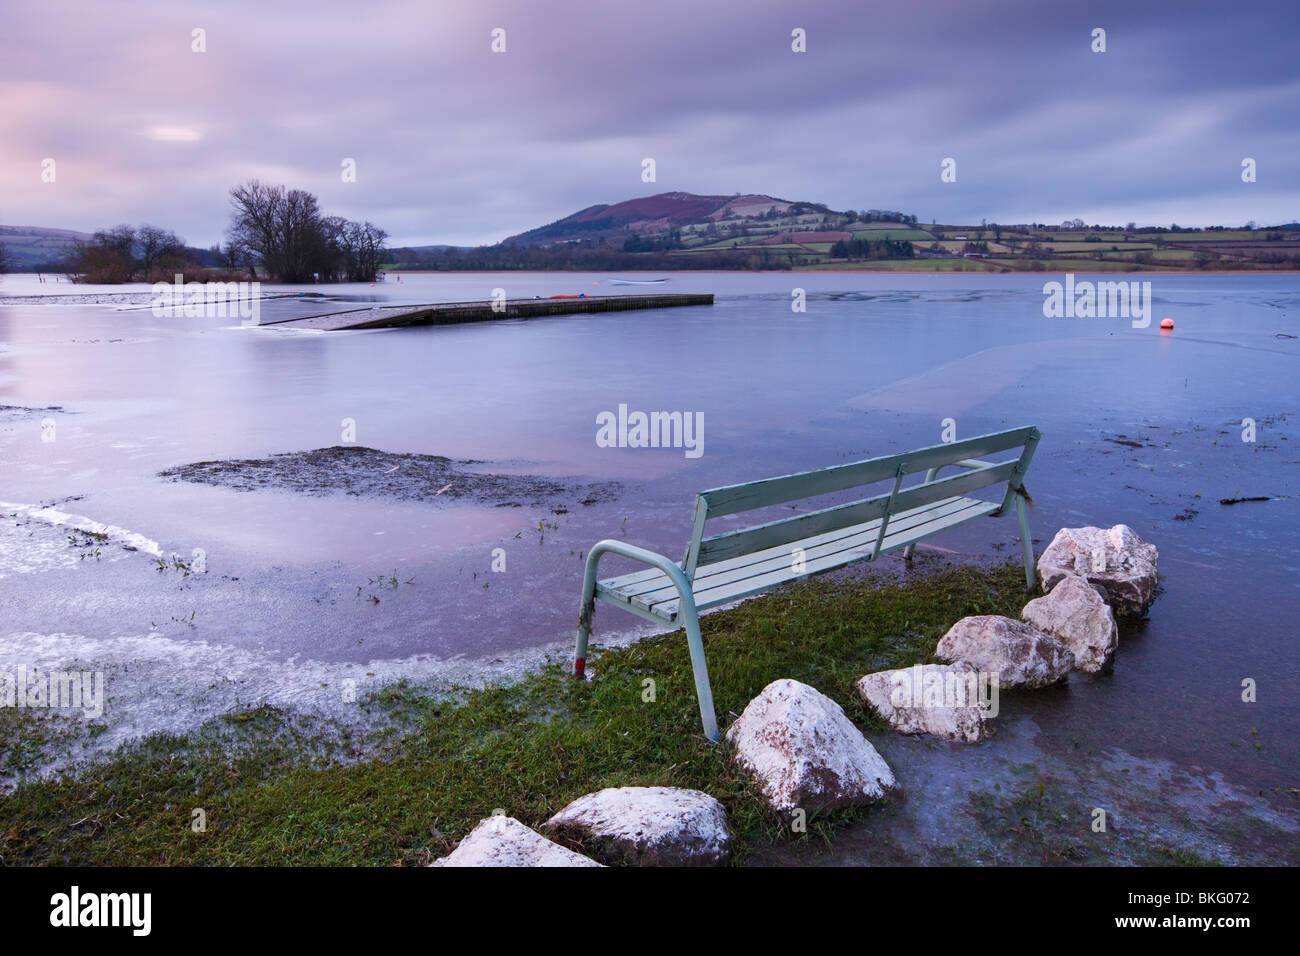 Empty bench on the frozen shores of Llangorse Lake in the Brecon Beacons National Park, Powys, Wales, UK. Winter - Stock Image